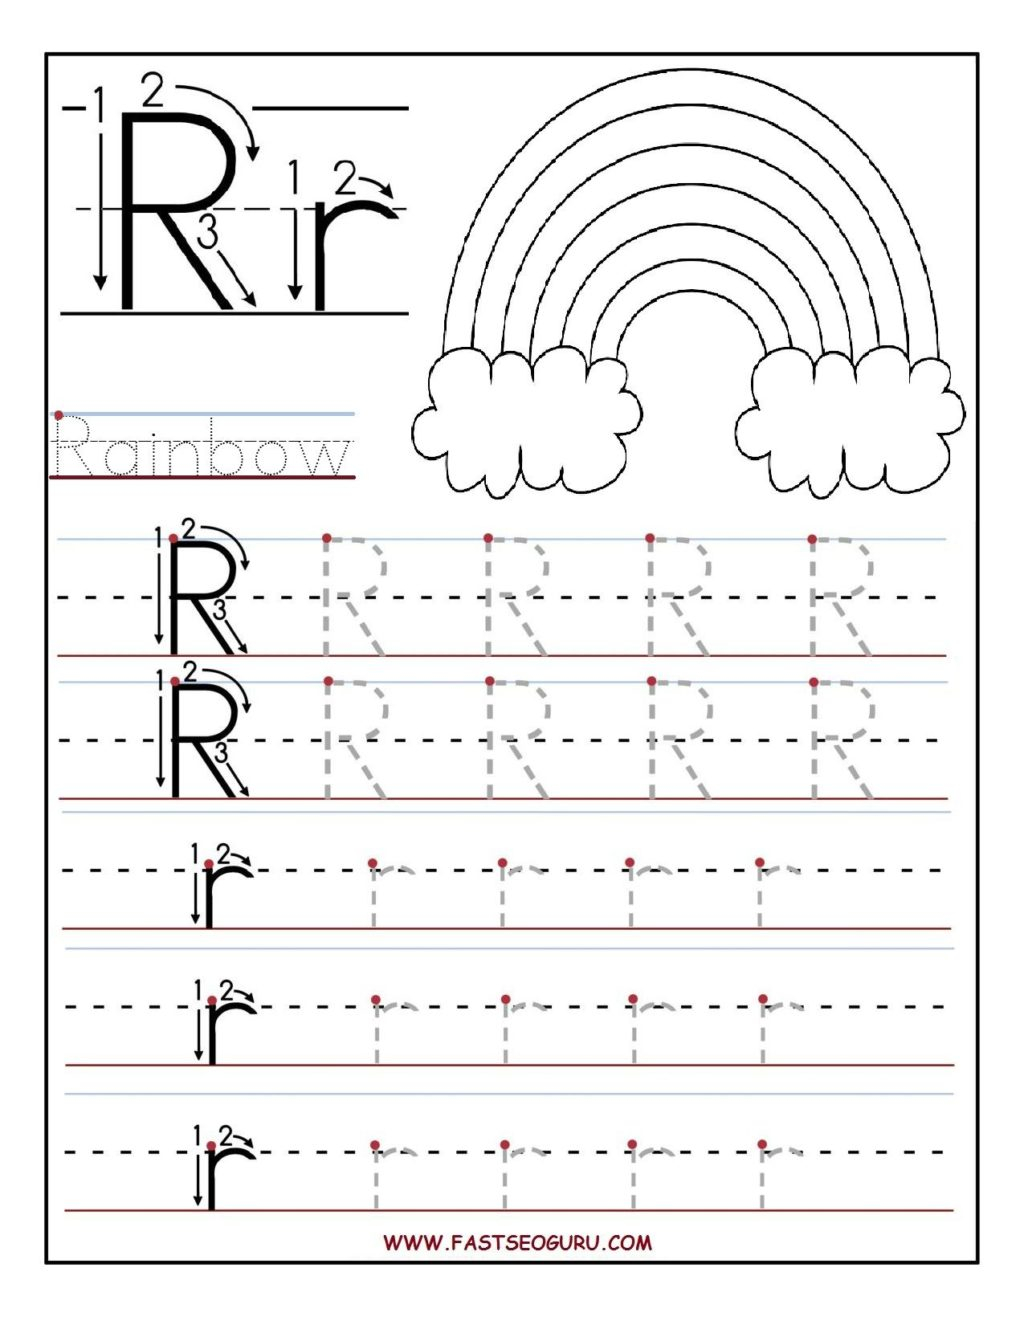 Worksheet ~ Letter Trace Worksheet Free Printable Worksheets